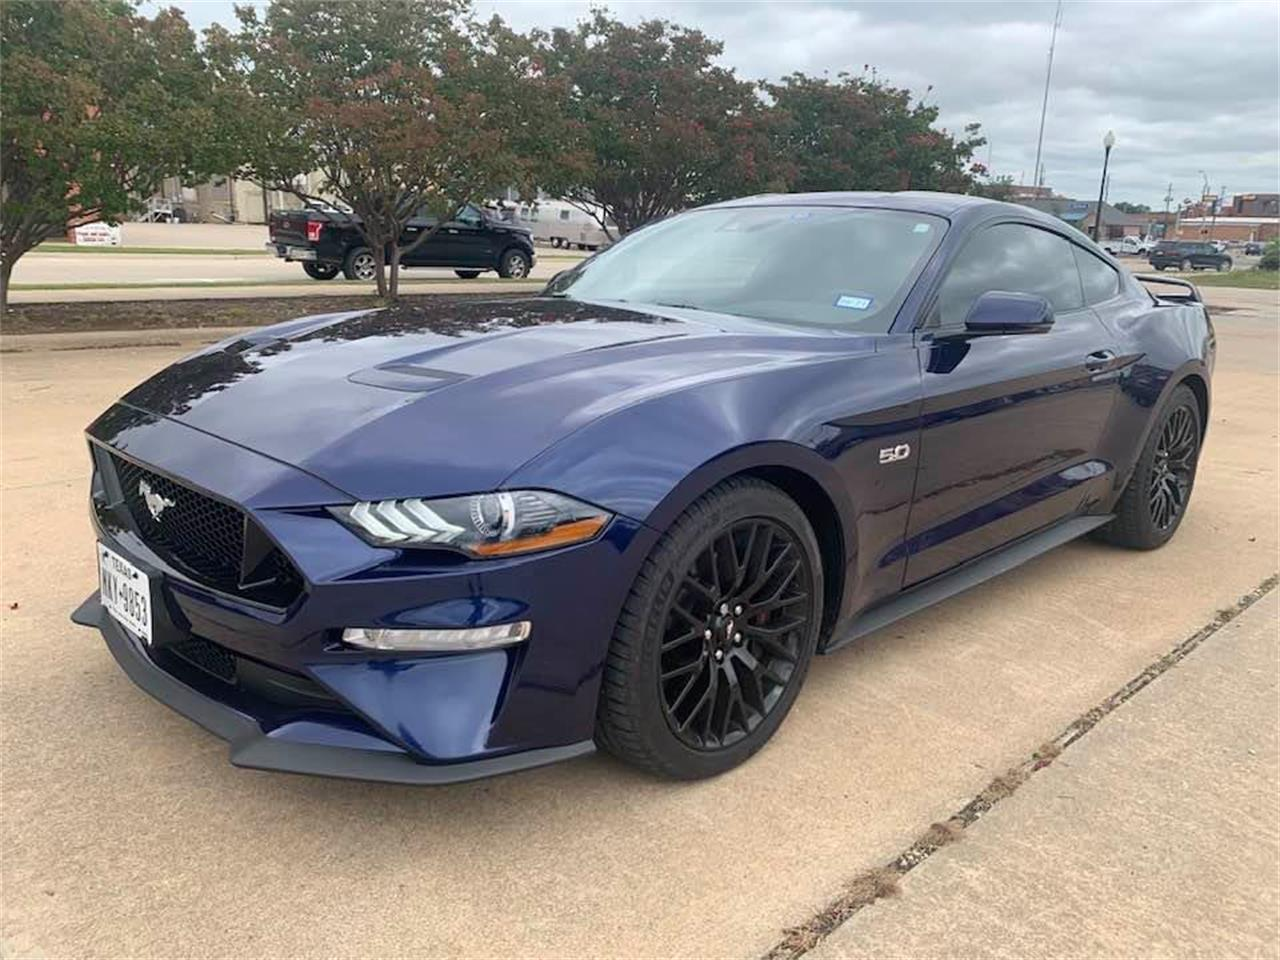 2019 Ford Mustang GT (CC-1393375) for sale in Denison, Texas